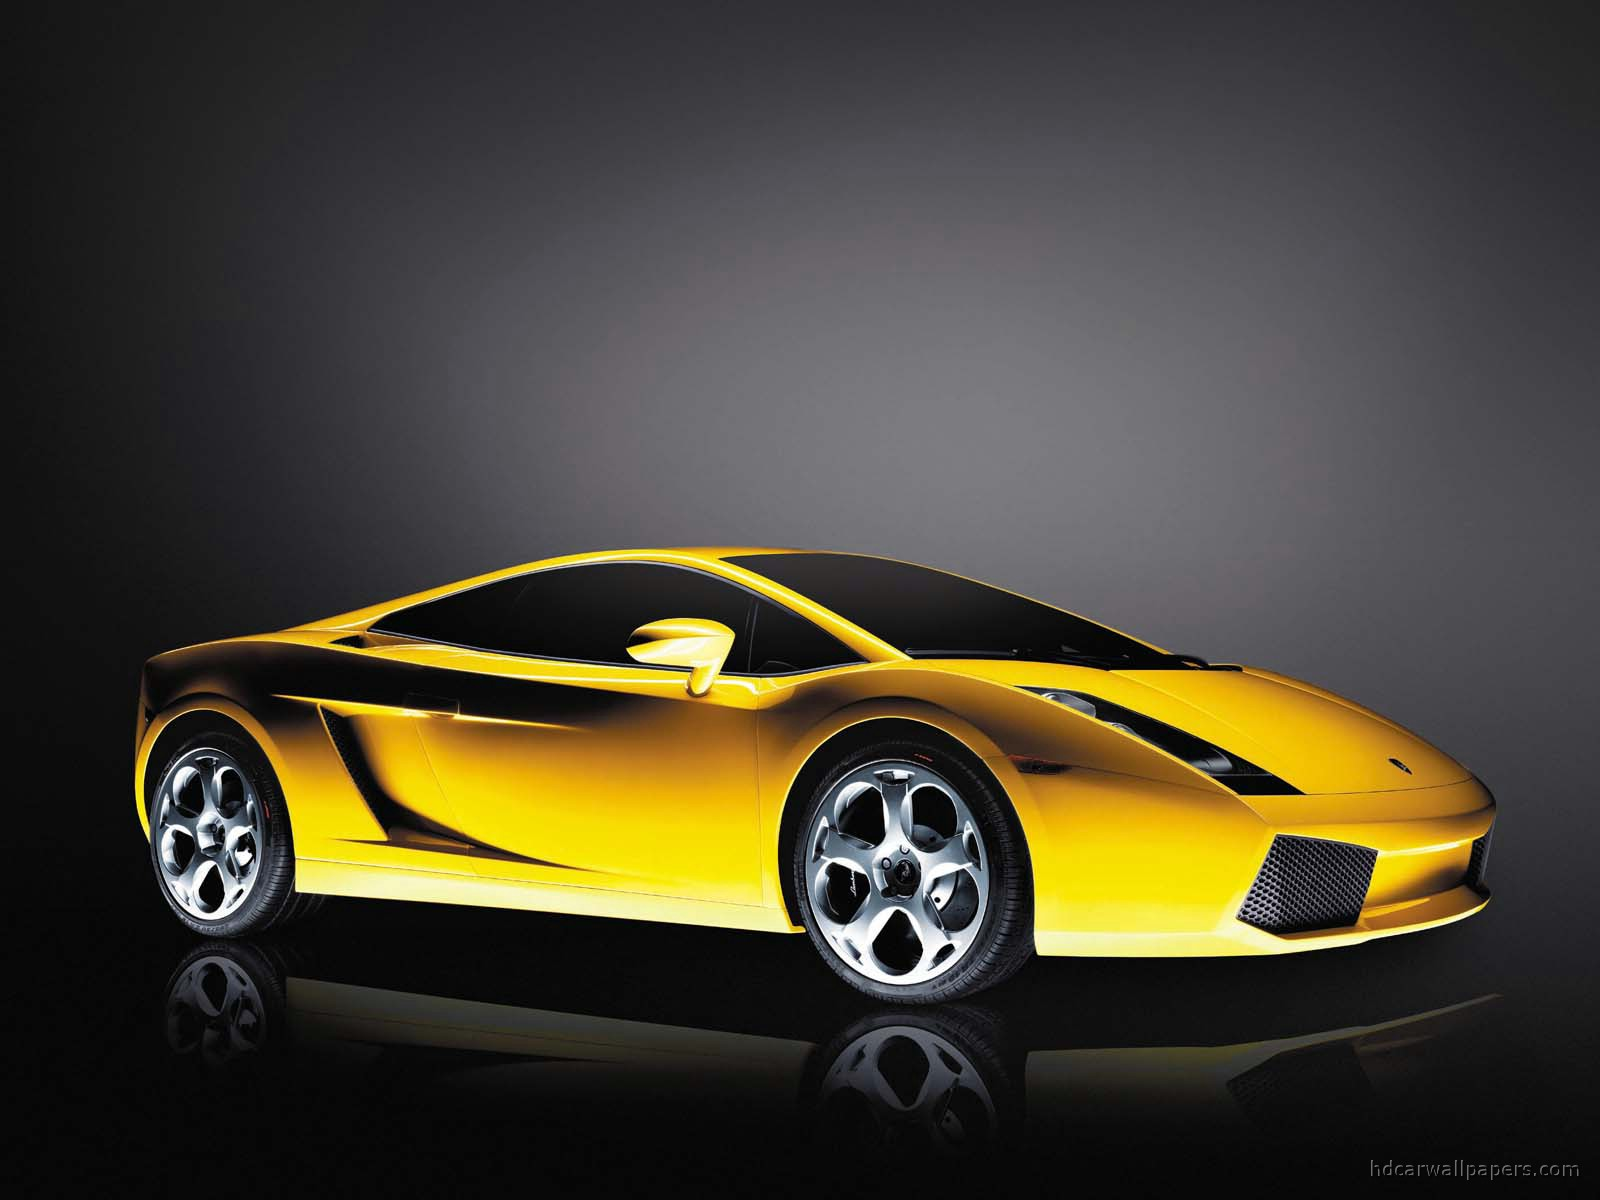 Lamborghini Gallardo Car 404.93 Kb